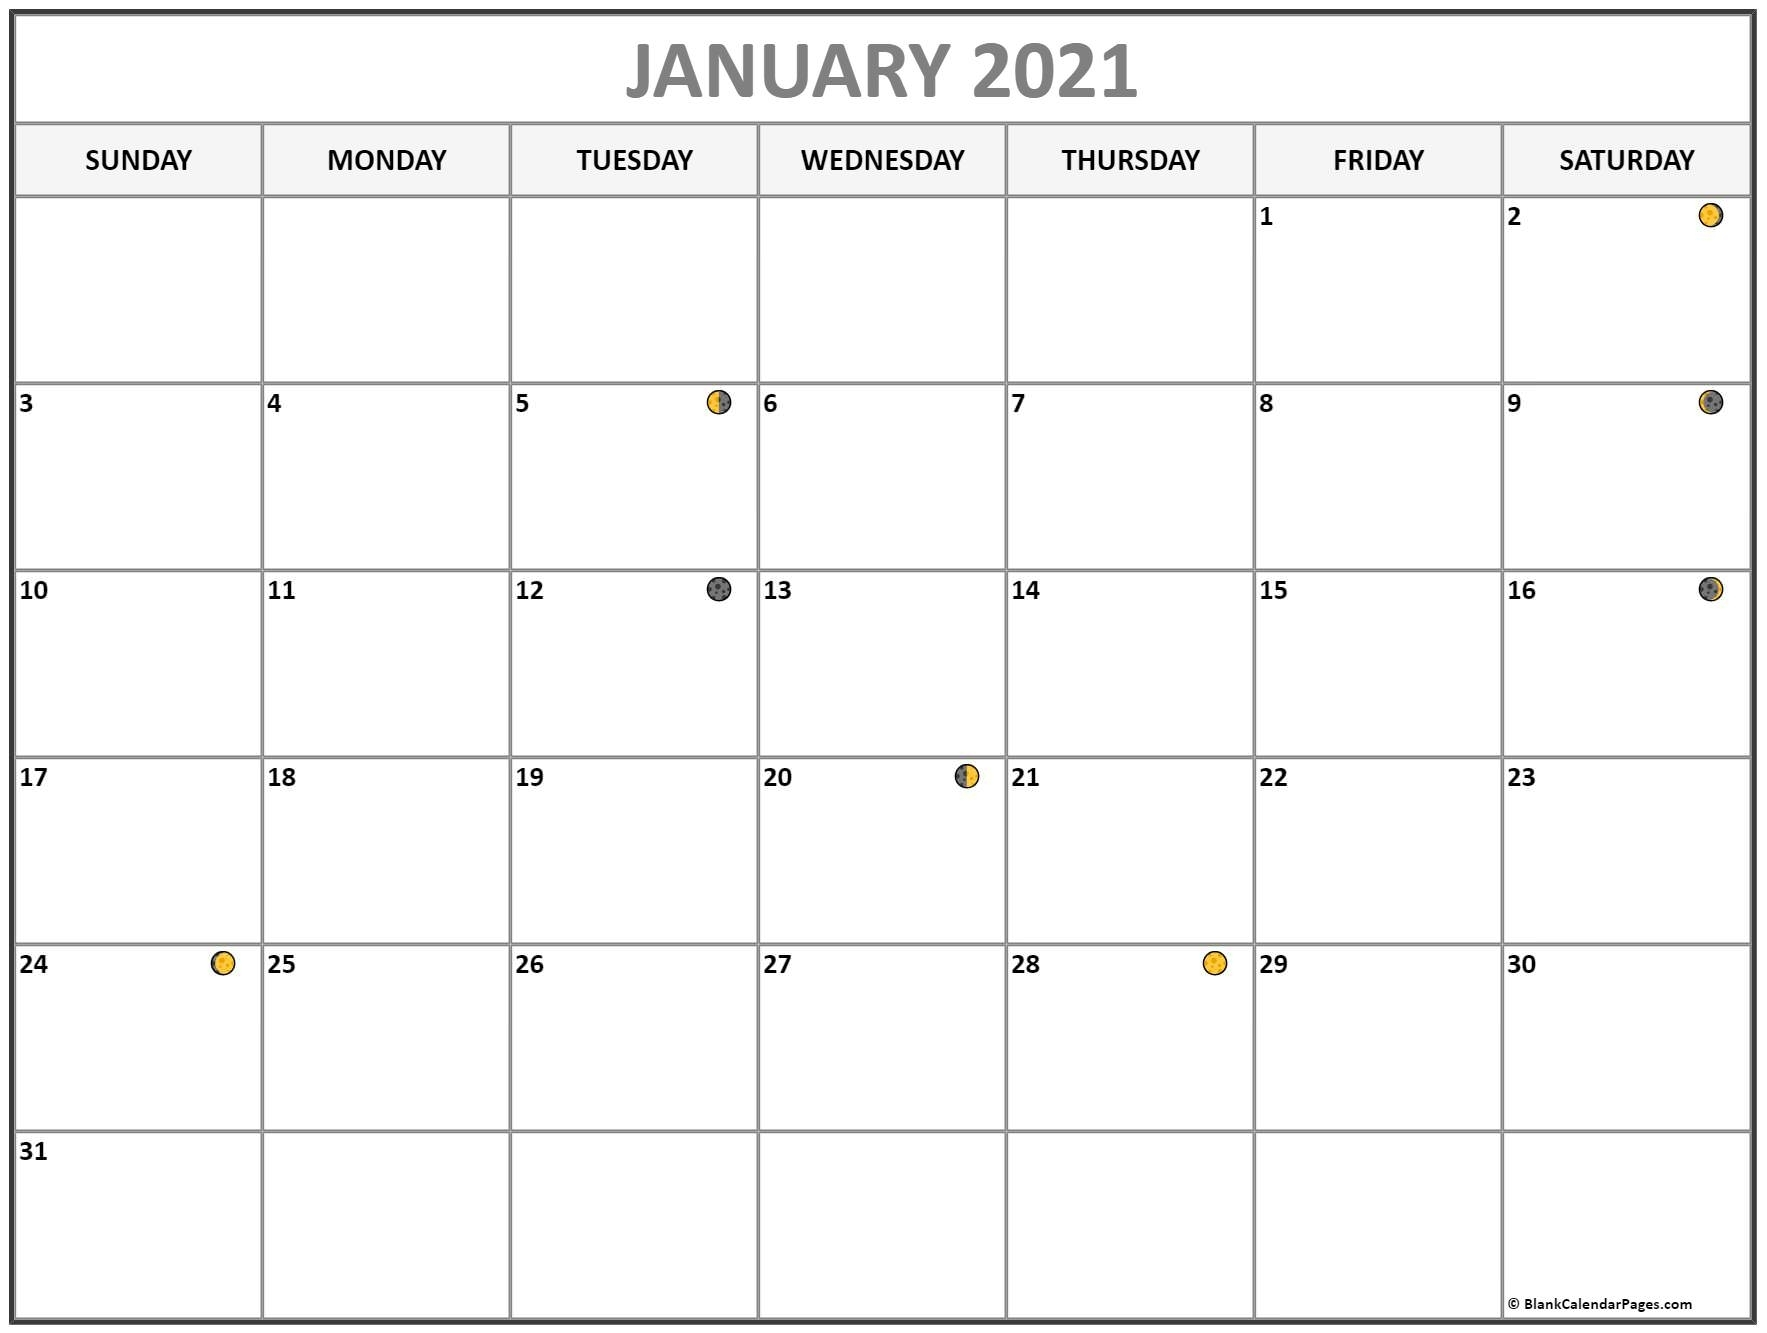 January 2021 Lunar Calendar | Moon Phase Calendar